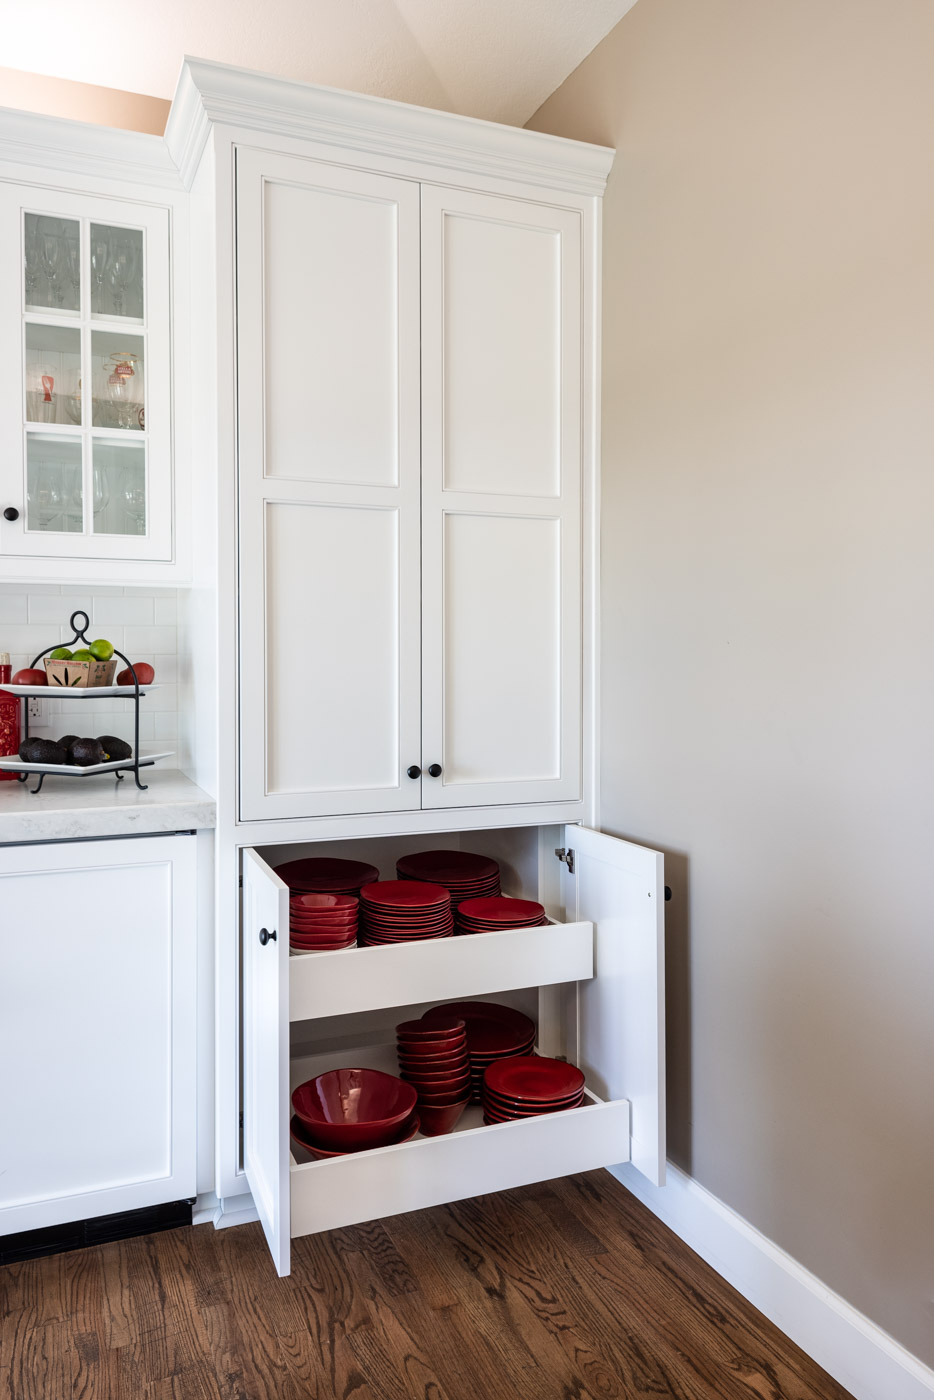 Transitional Country Cottage style kitchen with custom roll out cabinet storage